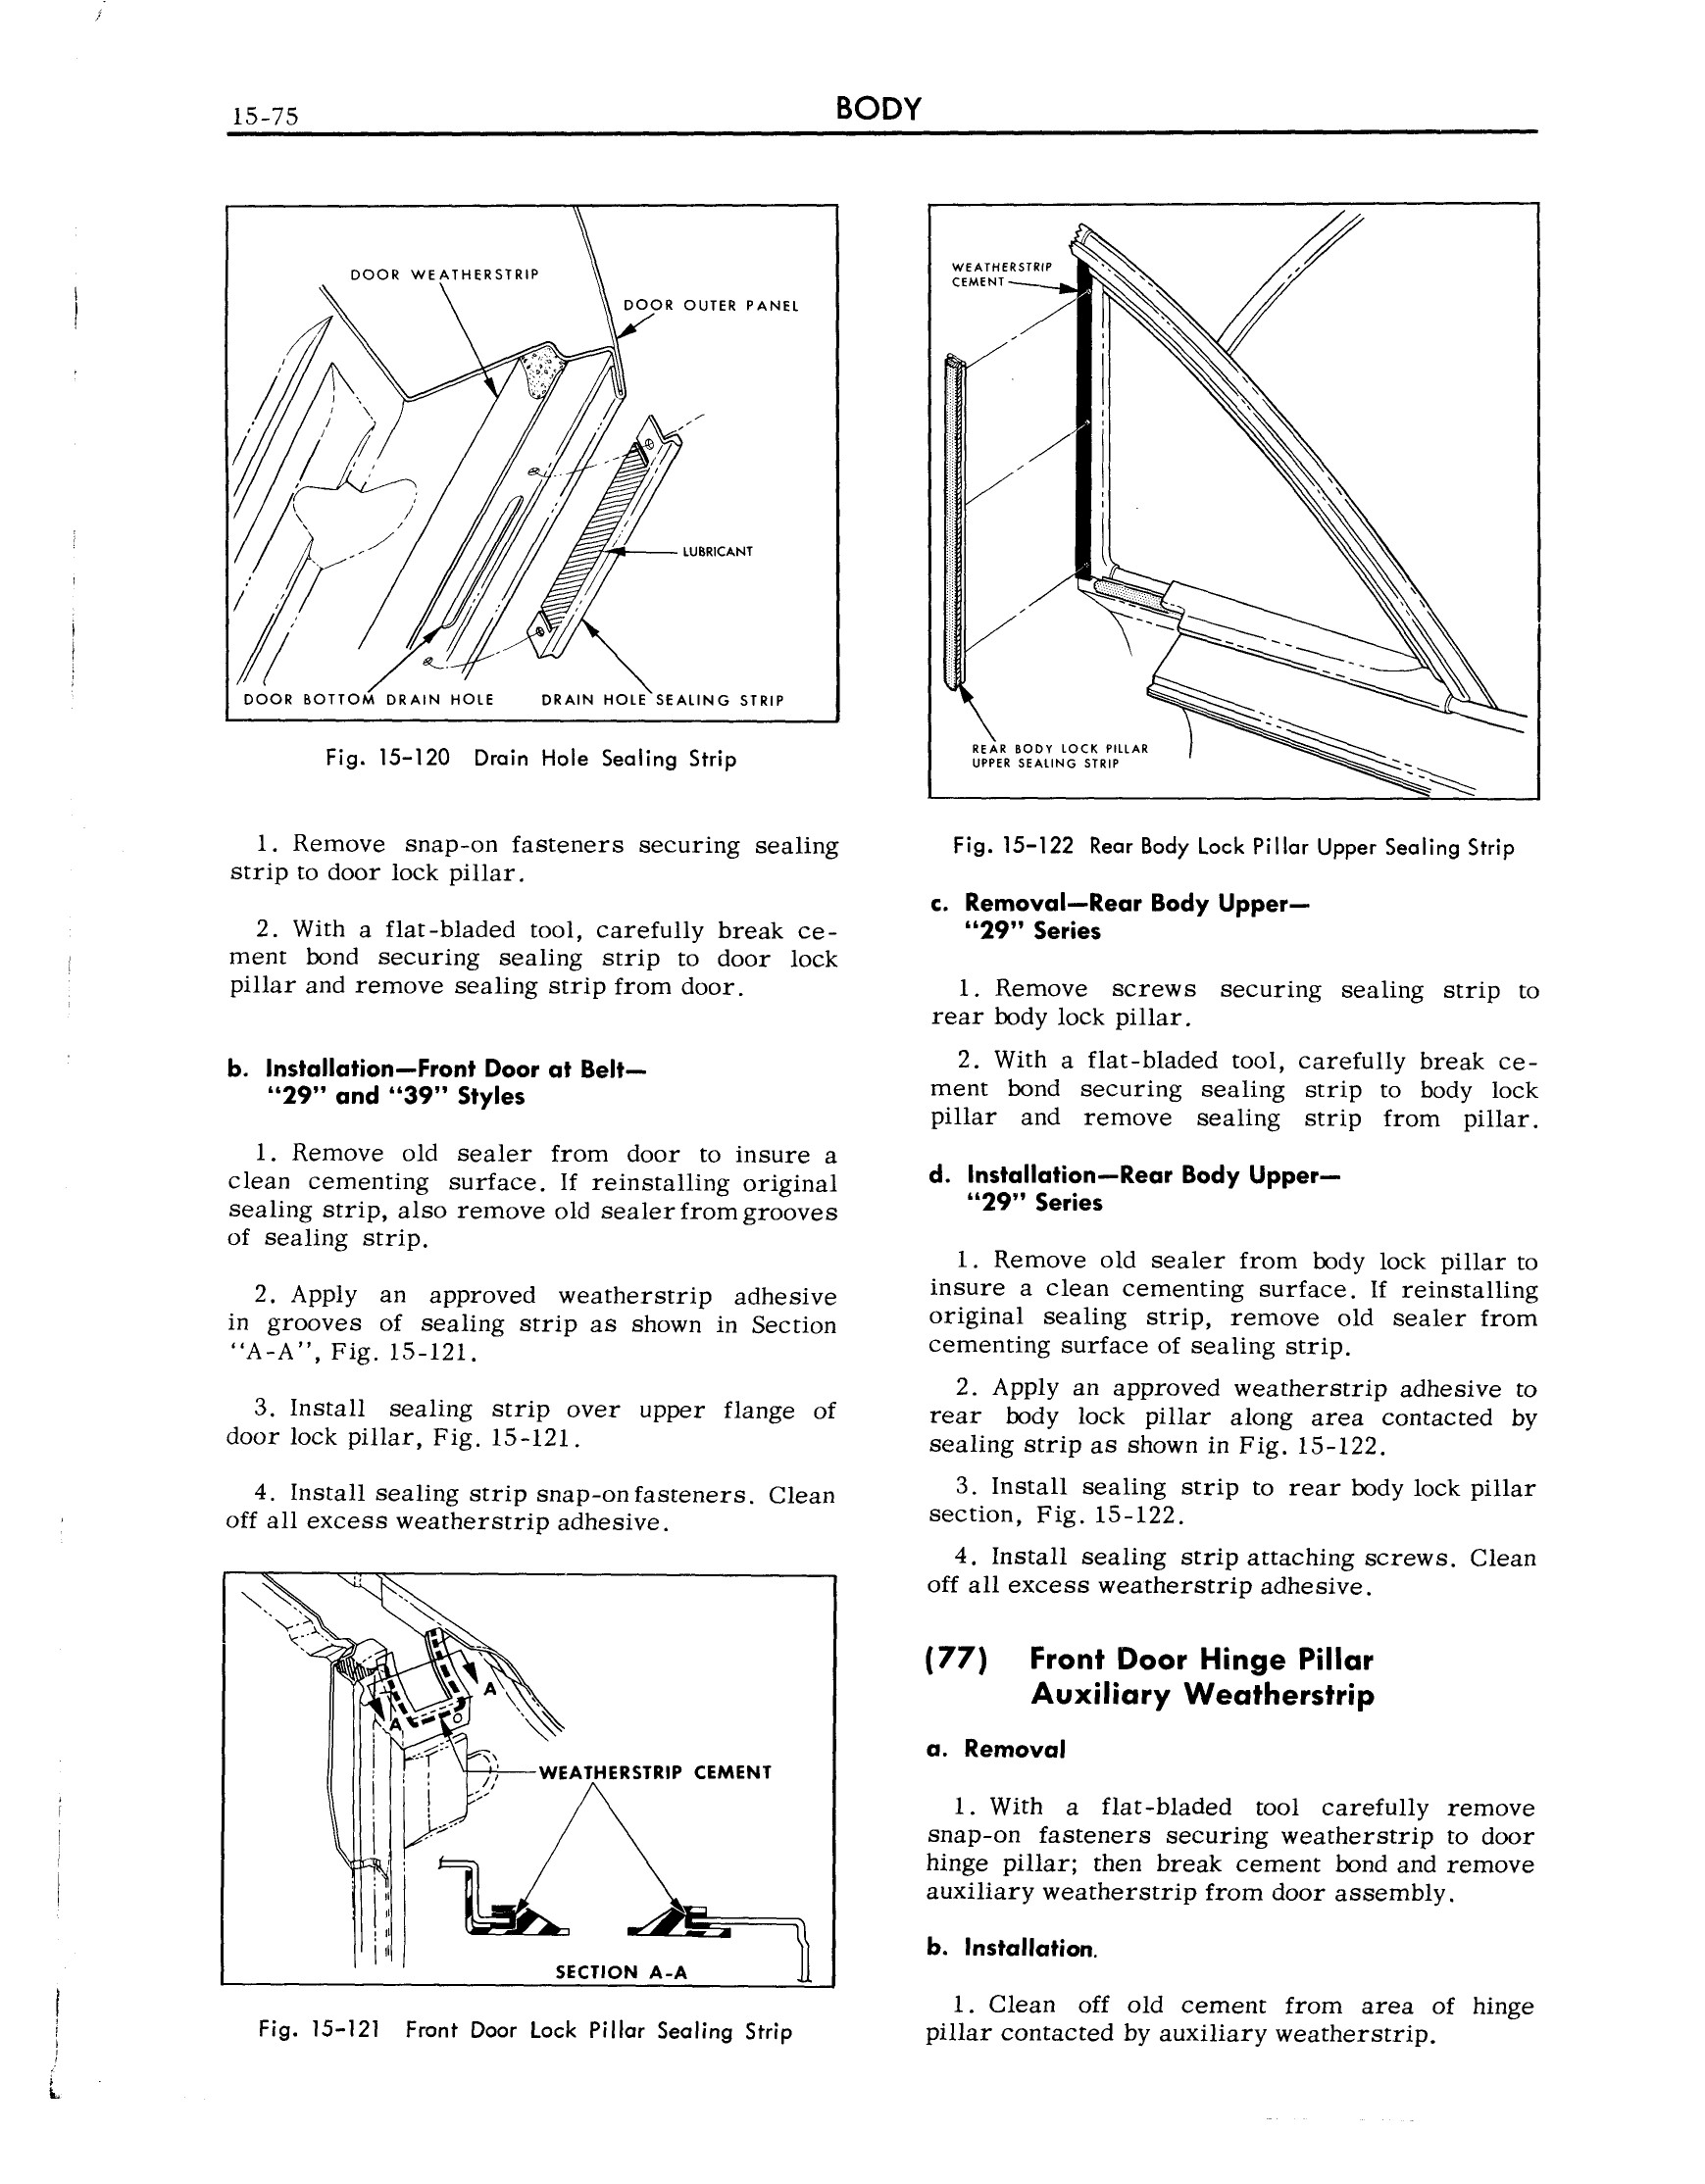 1959 Cadillac Shop Manual- Body Page 75 of 99